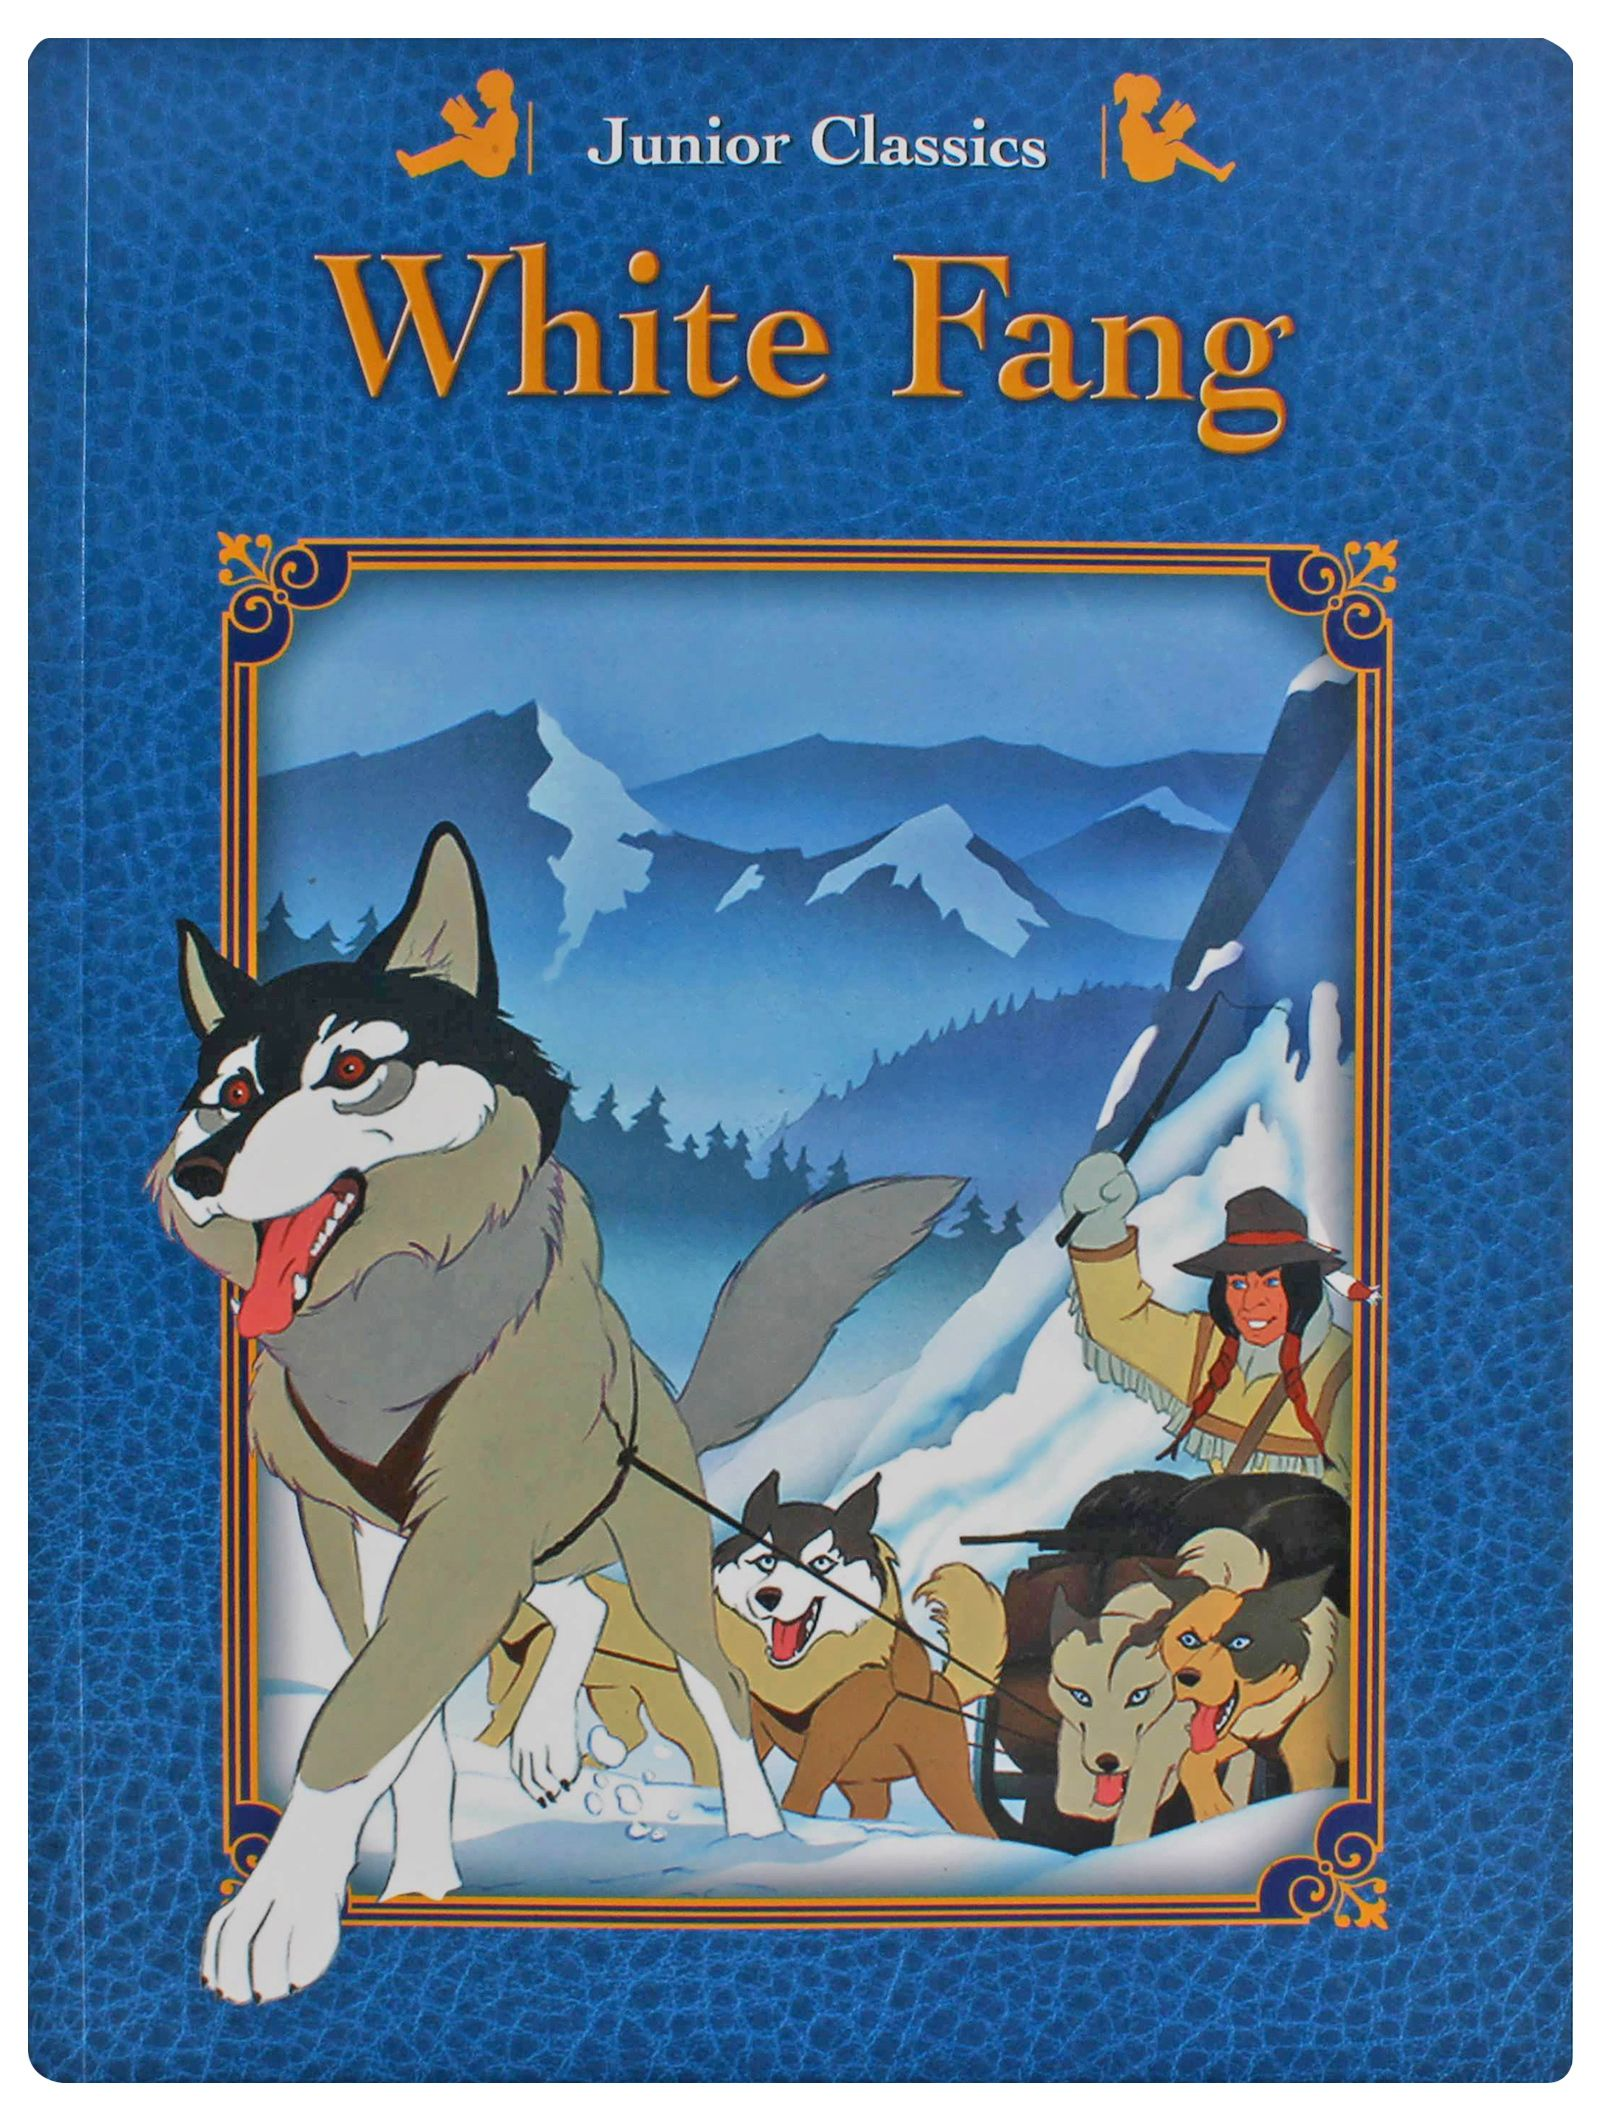 summary of white fang Summary: white fang is born in the wild 1/4 dog and 3/4 wolf he soon finds himself back in the realm of man when his mother returns to the indian camp she had left.